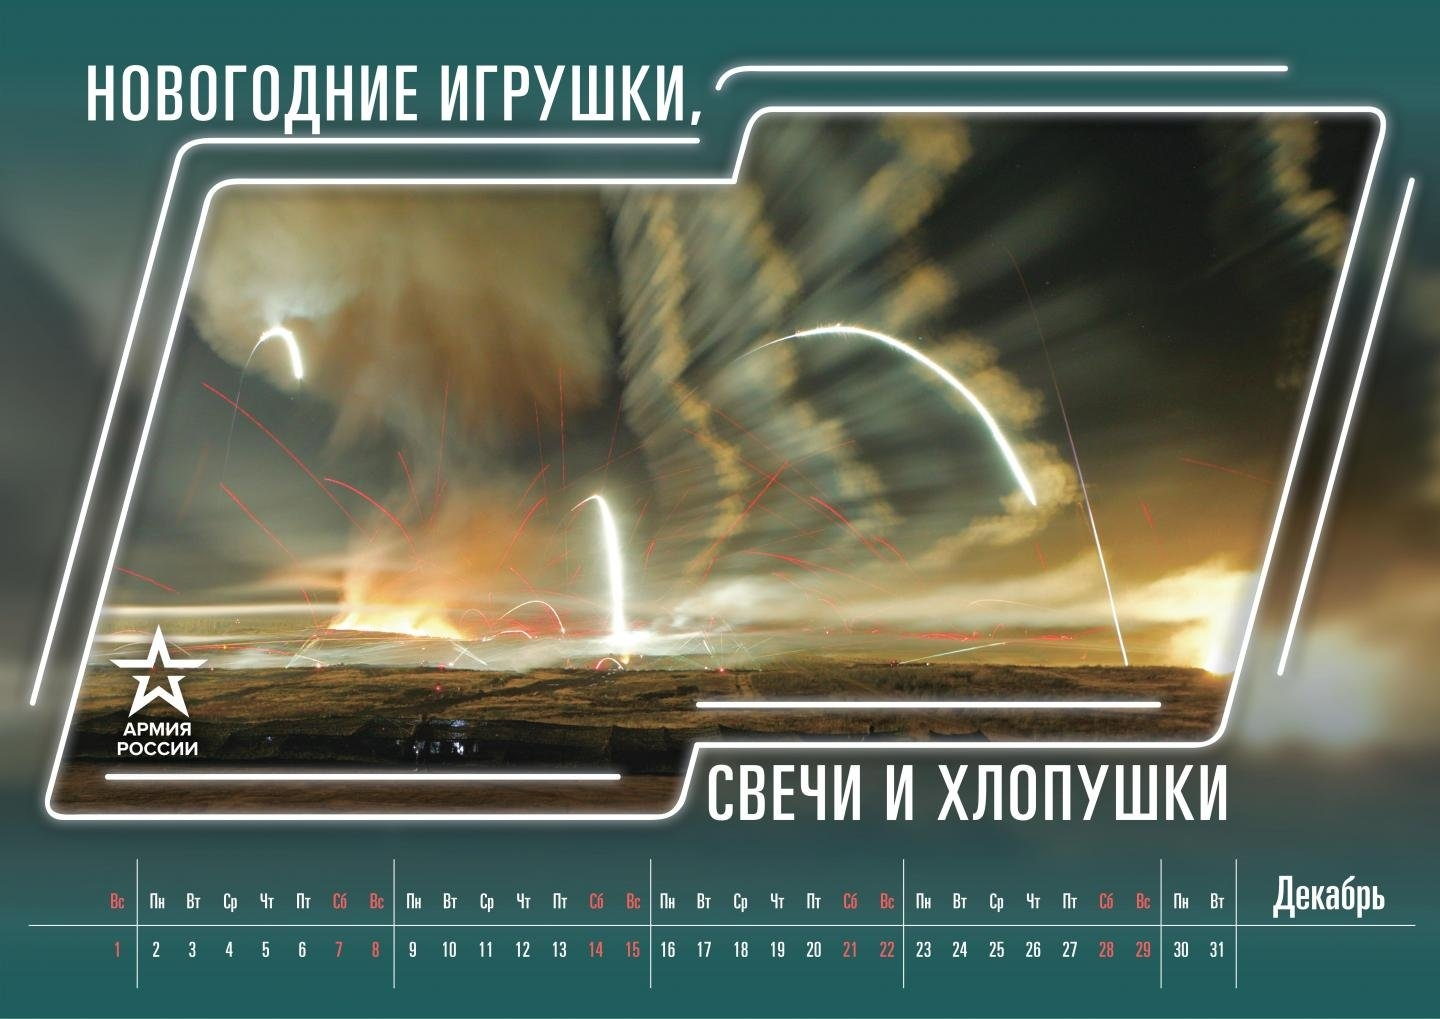 Russia Shows Off Military Might In 2019 Calendar Photos With Guns Calendar 2019 Russia